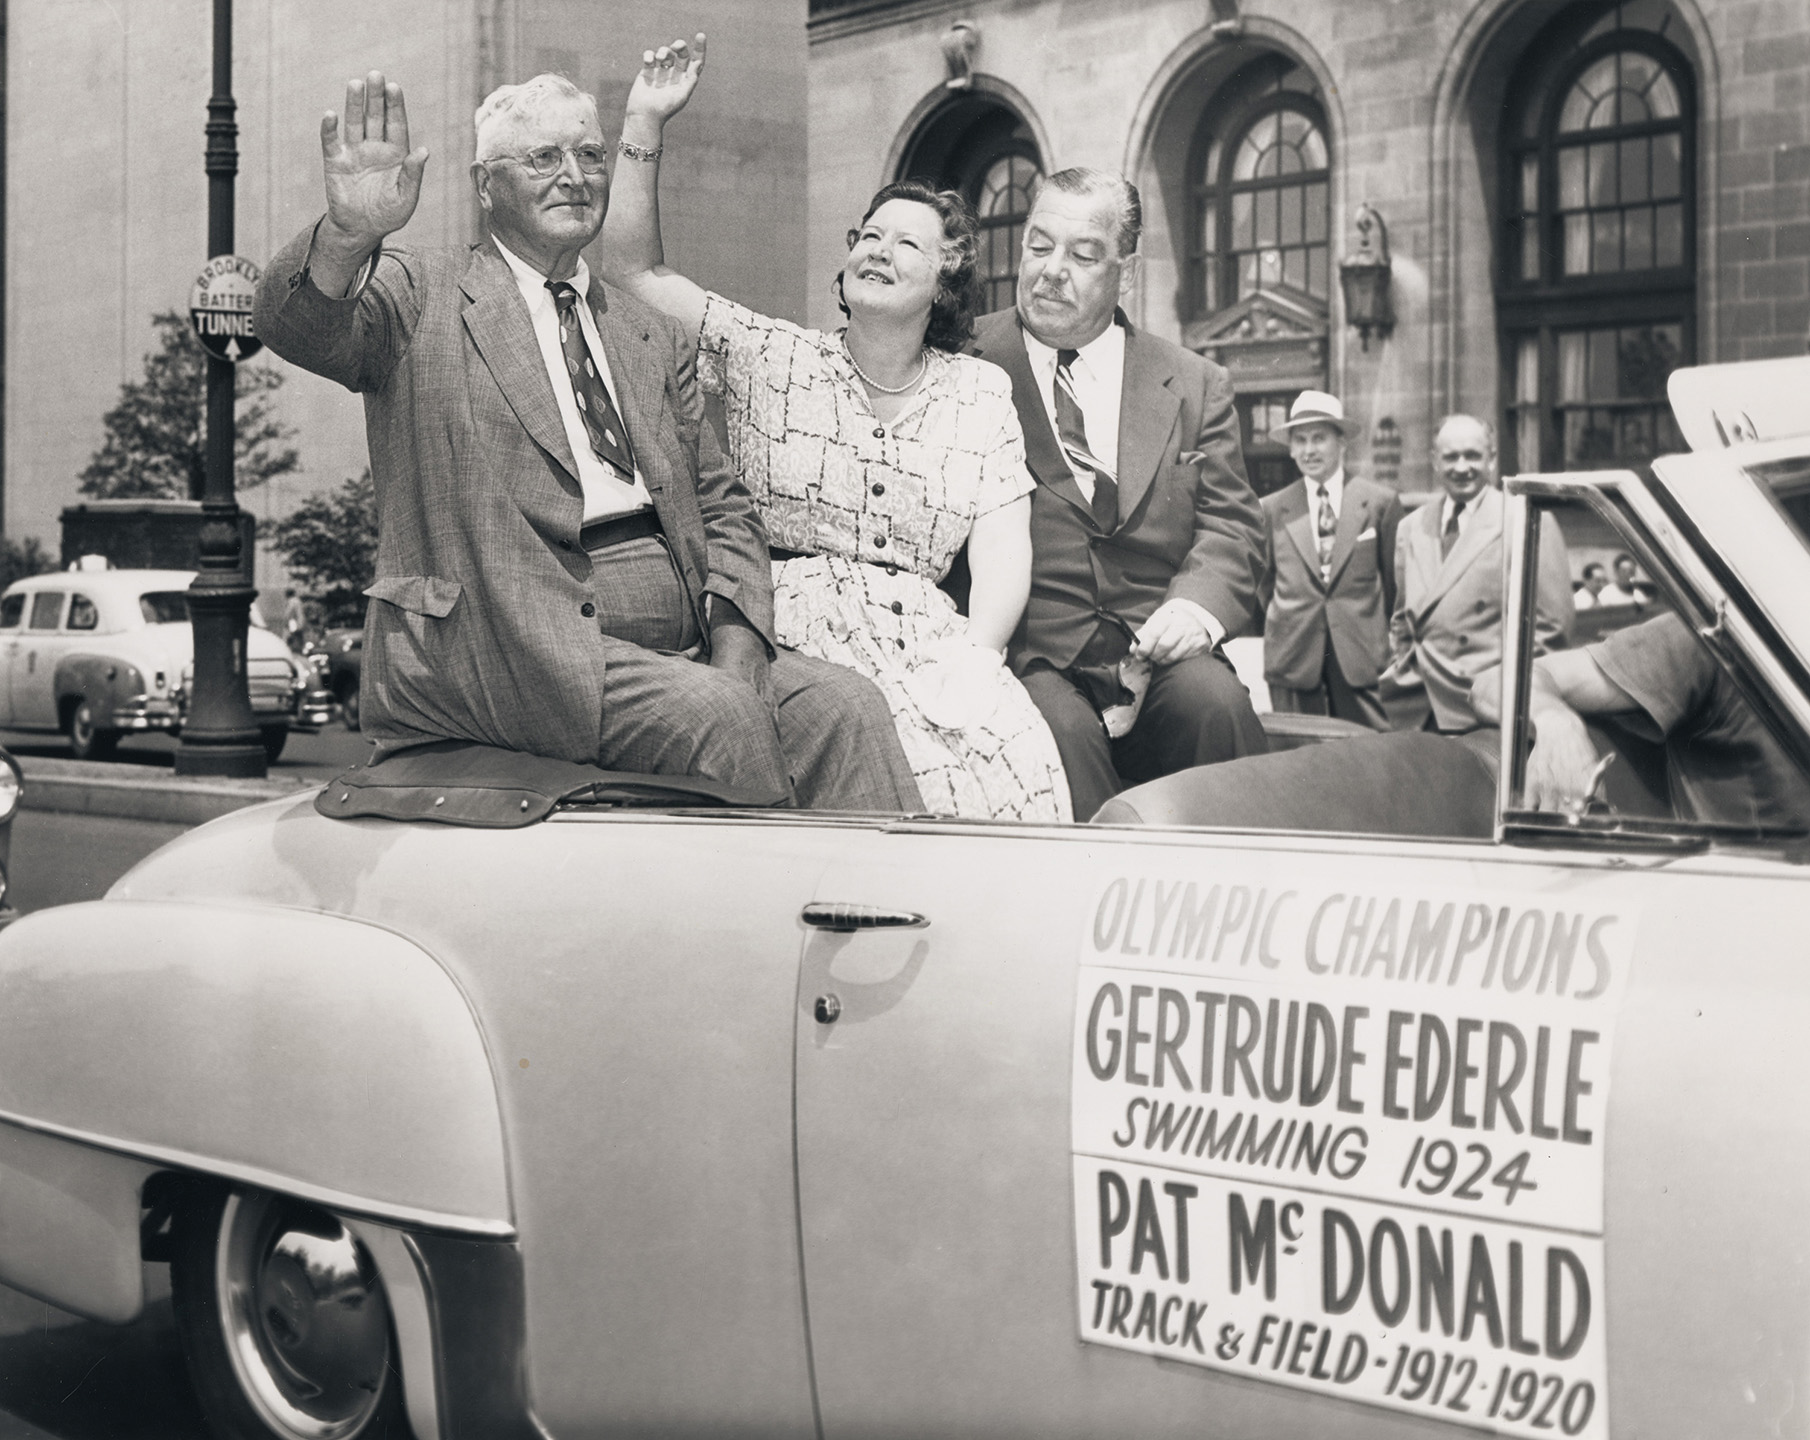 Former Olympic track and field medal winner Pat McDonald, and swimming champion Gertrude Ederle rode with Mayor's Reception Committee Chairman Grover Whalen (at right) in the parade, July 7, 1952.